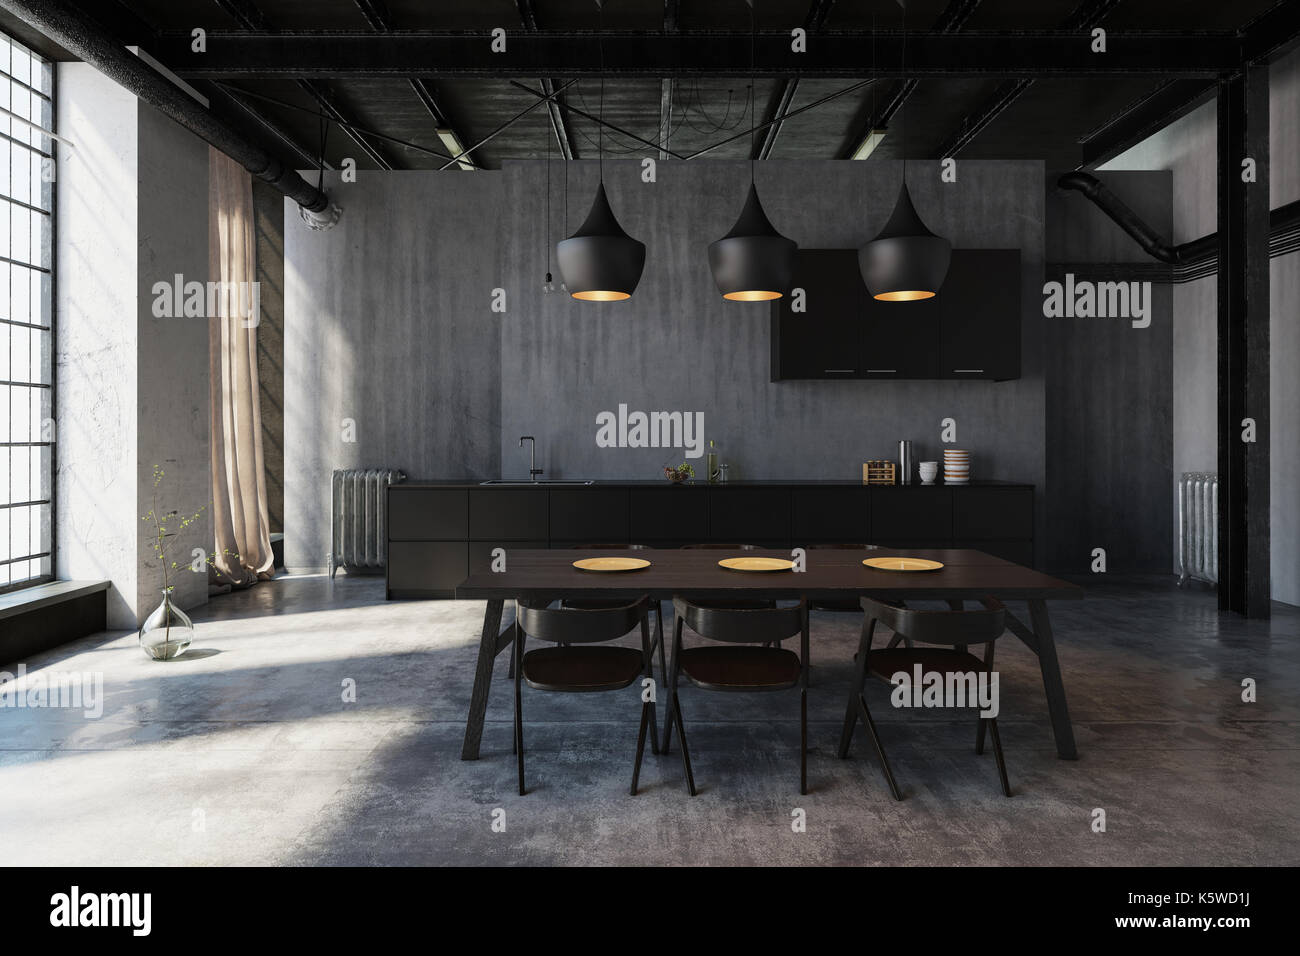 Modern Hipster Dining Area In An Industrial Loft Conversion With Stock Photo Alamy